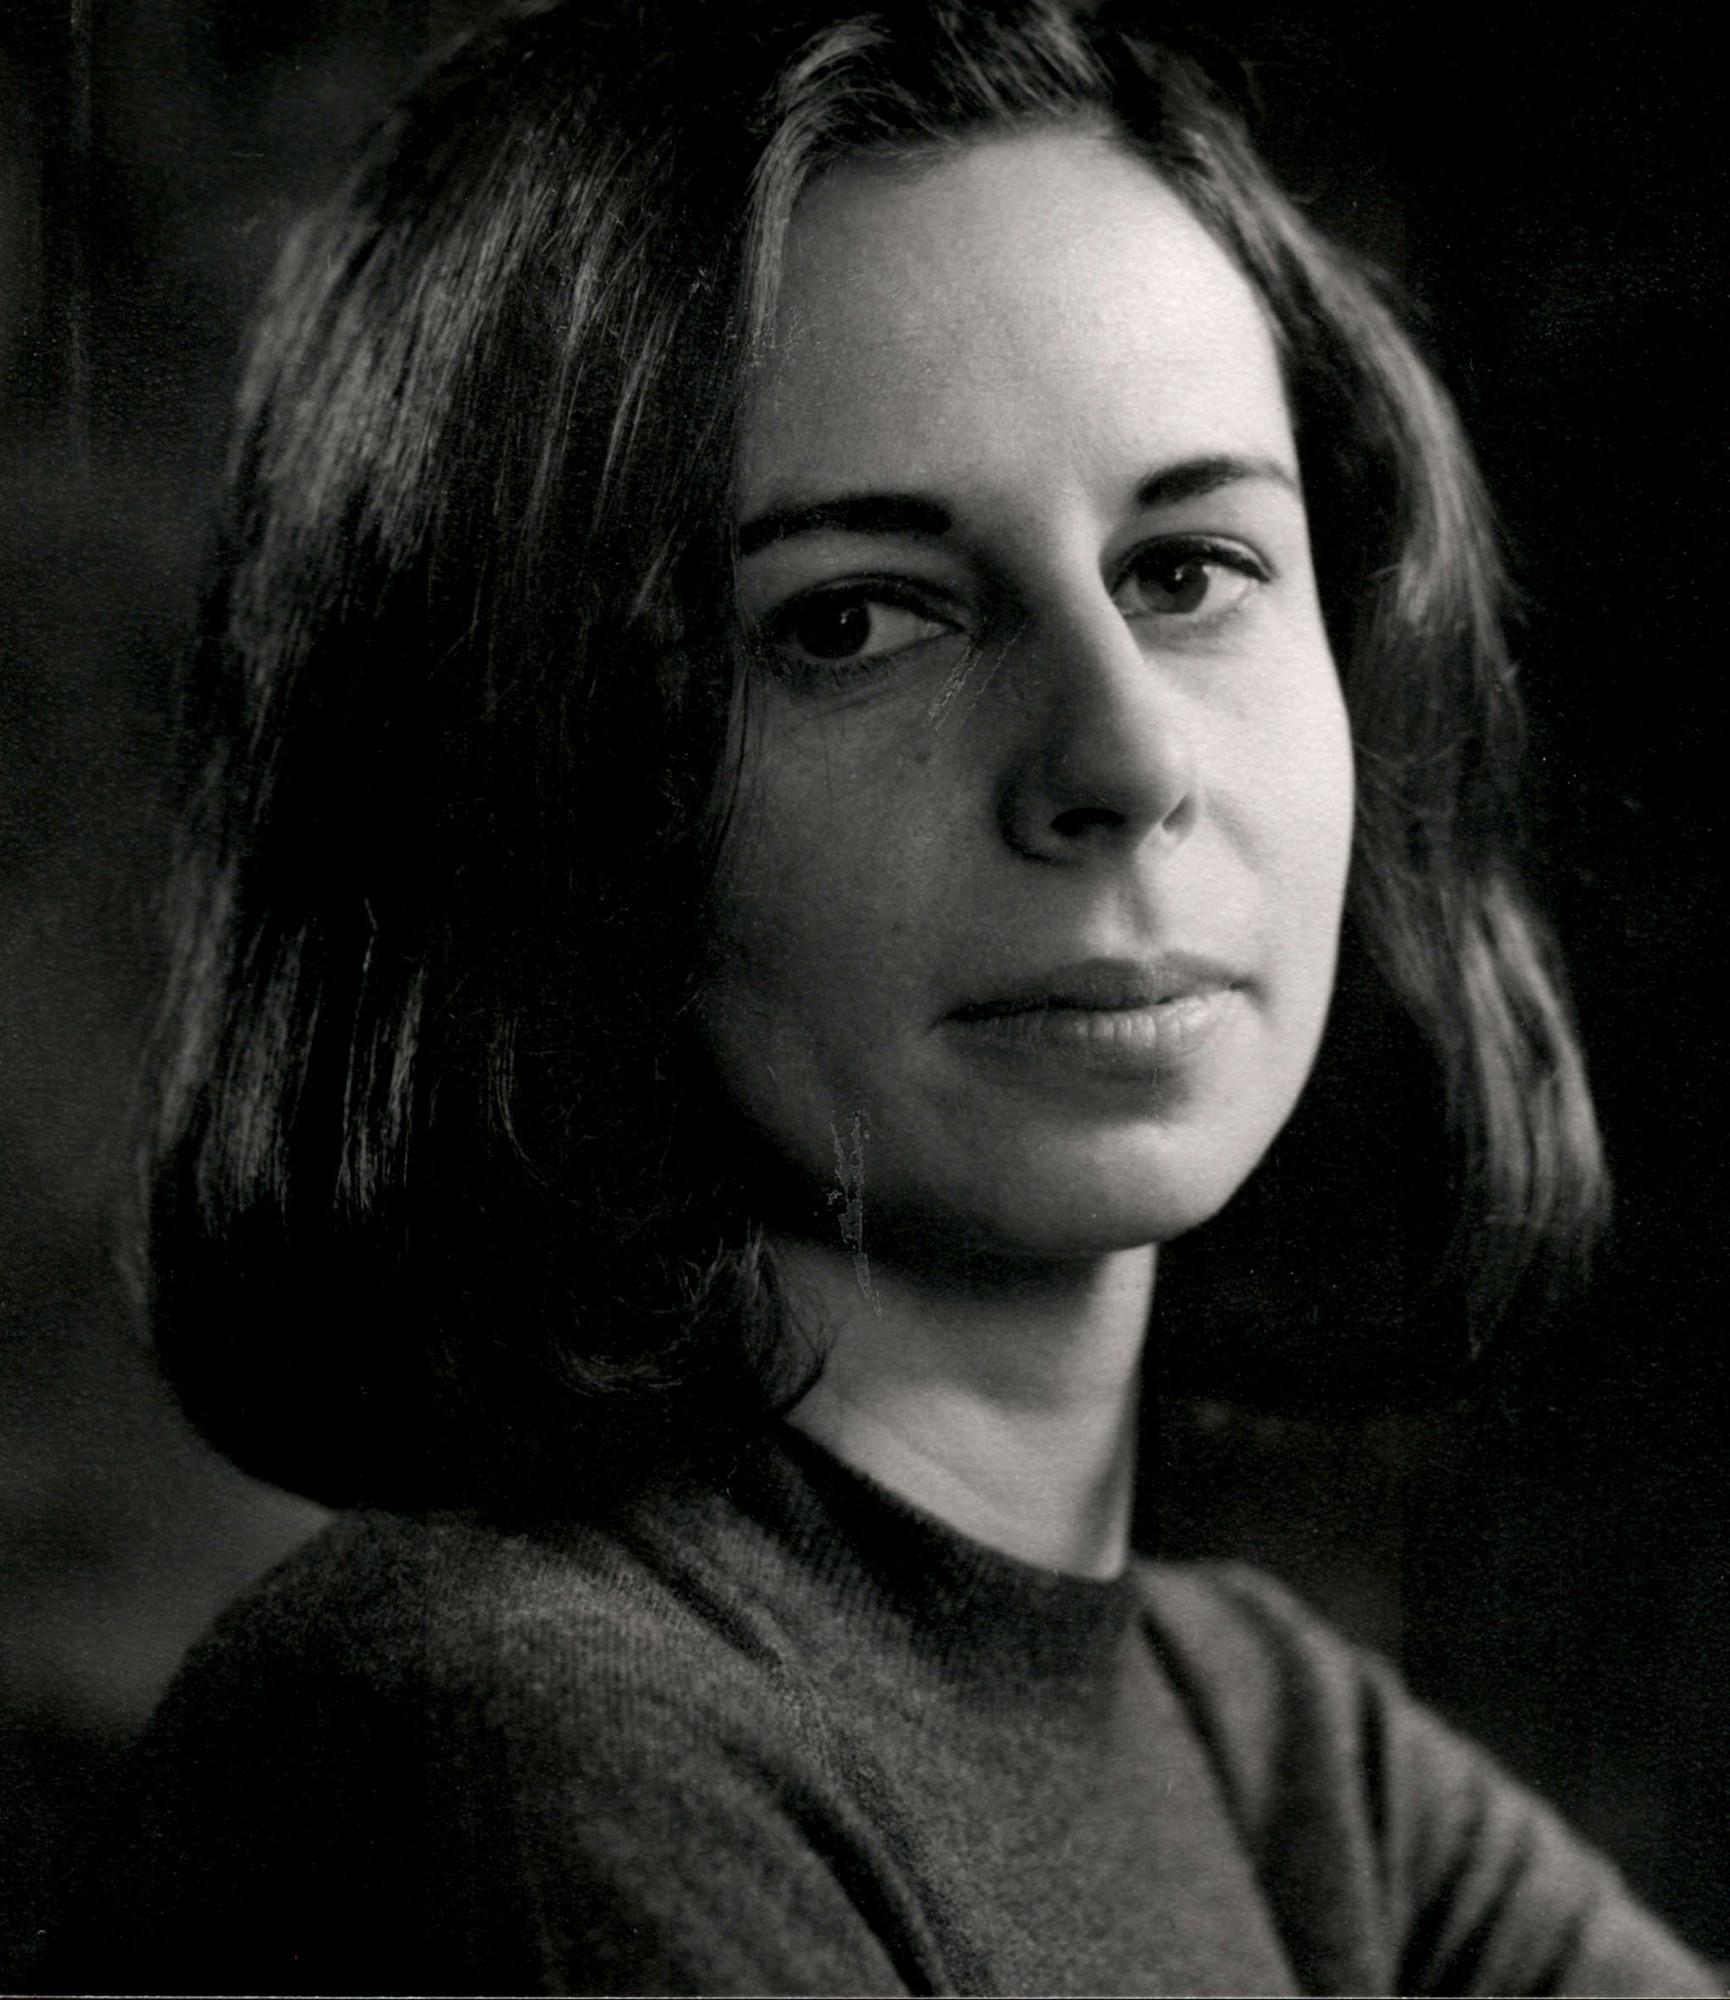 Anne Barton, one of the 20th century's foremost Shakespeare scholars who taught at Cambridge University and was a fellow of Trinity College, died Monday in Cambridge, England. She was 80.